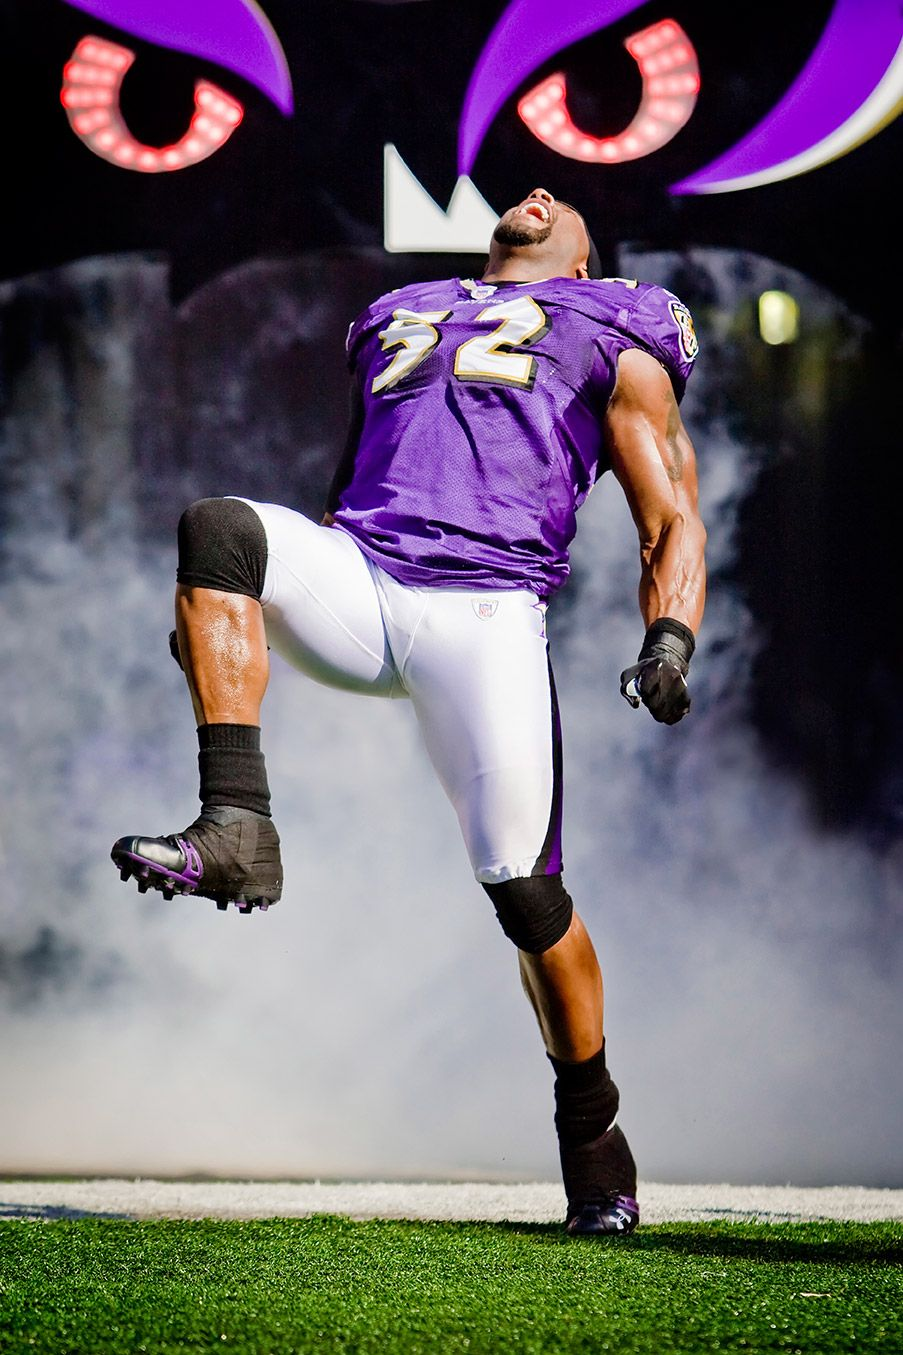 52 Ray Lewis.... His last game  o( we better win today! ( 18)  25ce81ccf